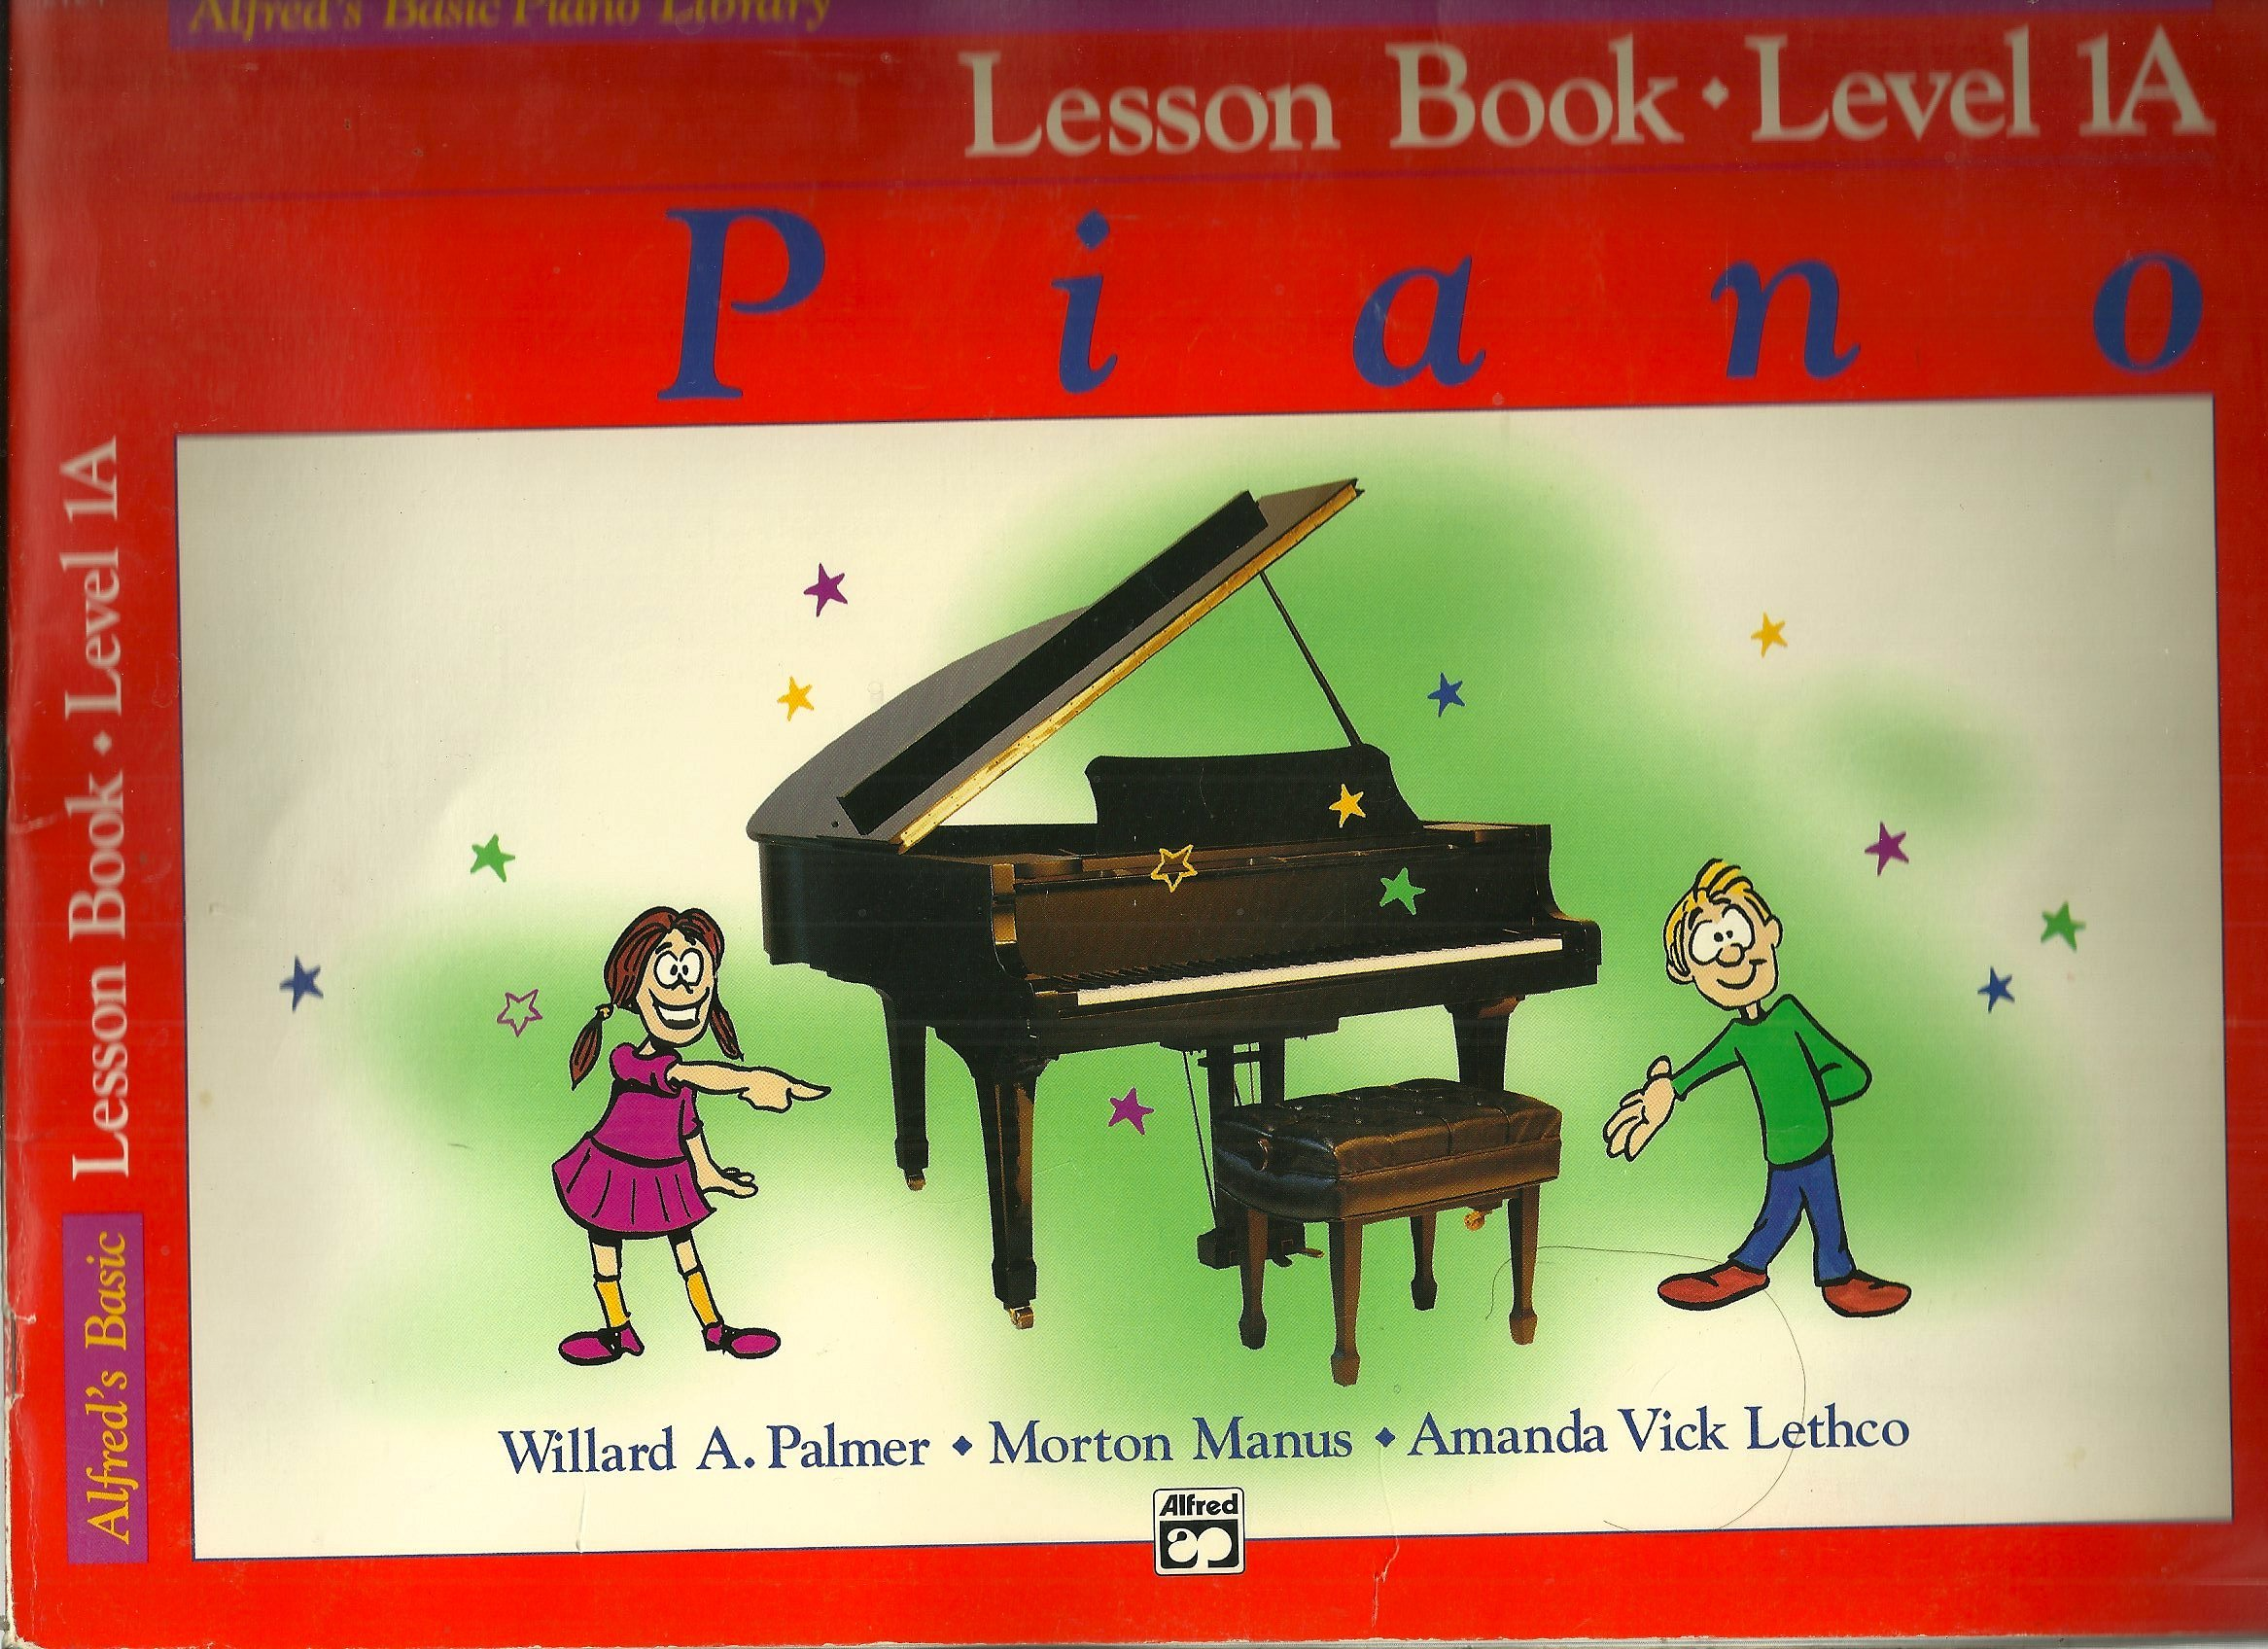 Alfred's Basic Piano Library Lesson Book (Level 1A)